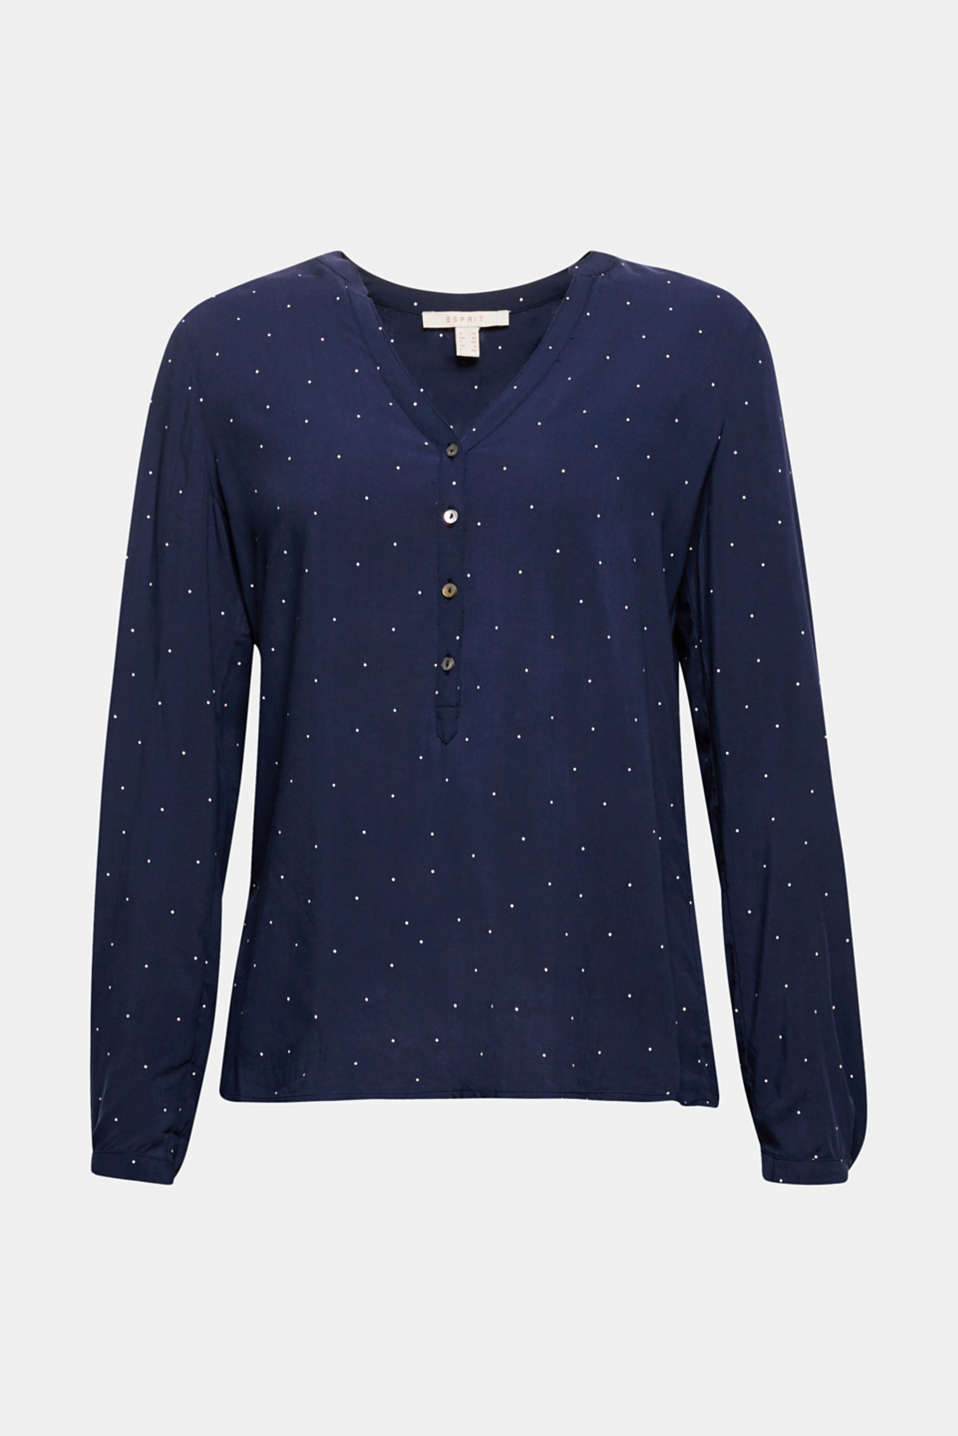 Henley blouse with polka dots and turn-up sleeves, NAVY, detail image number 7